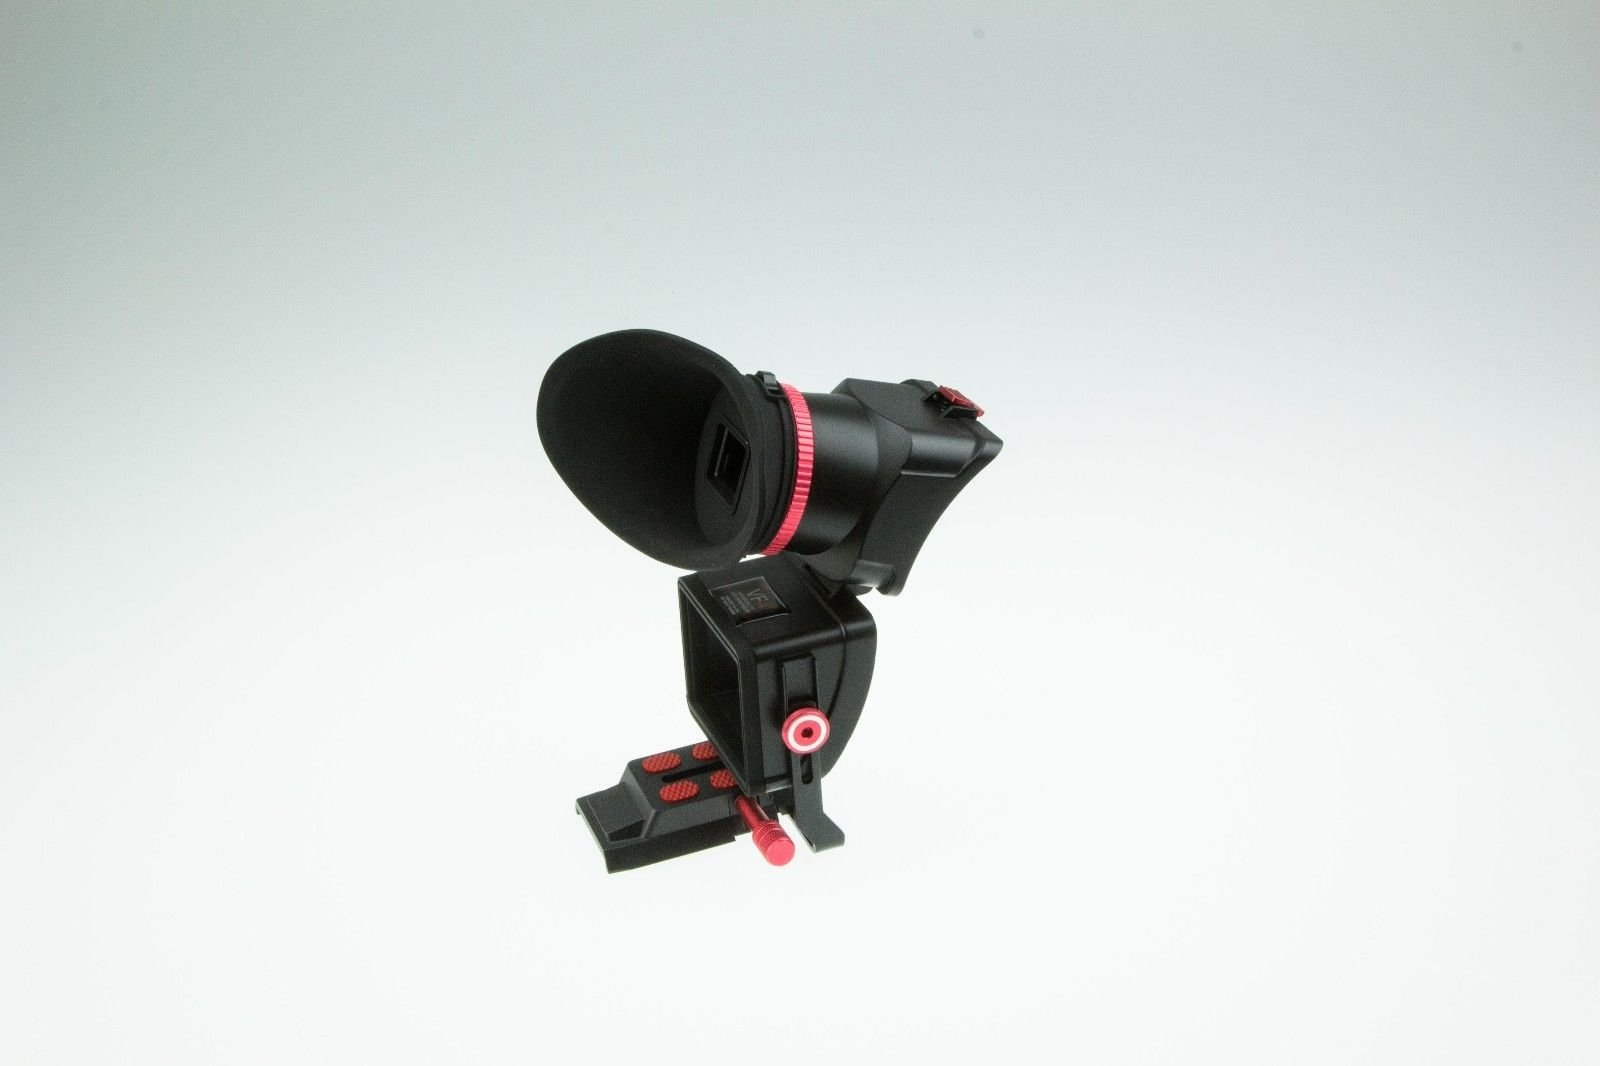 Authentic Kamerar VF-4+ Universal LCD View Finder for DSLR and Mirror-less Cameras by Kamerar